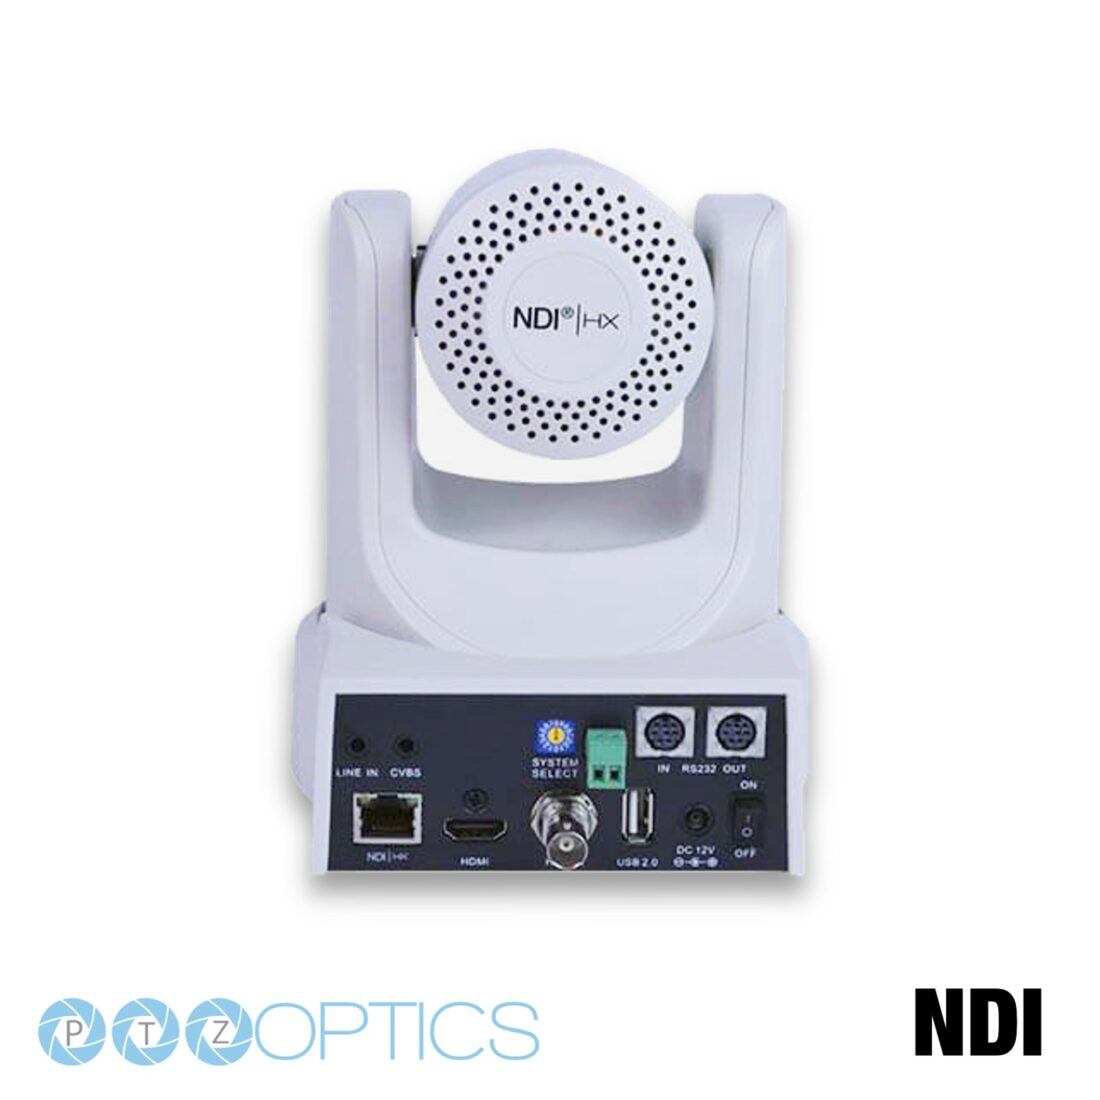 PTZ Optics NDI rear white